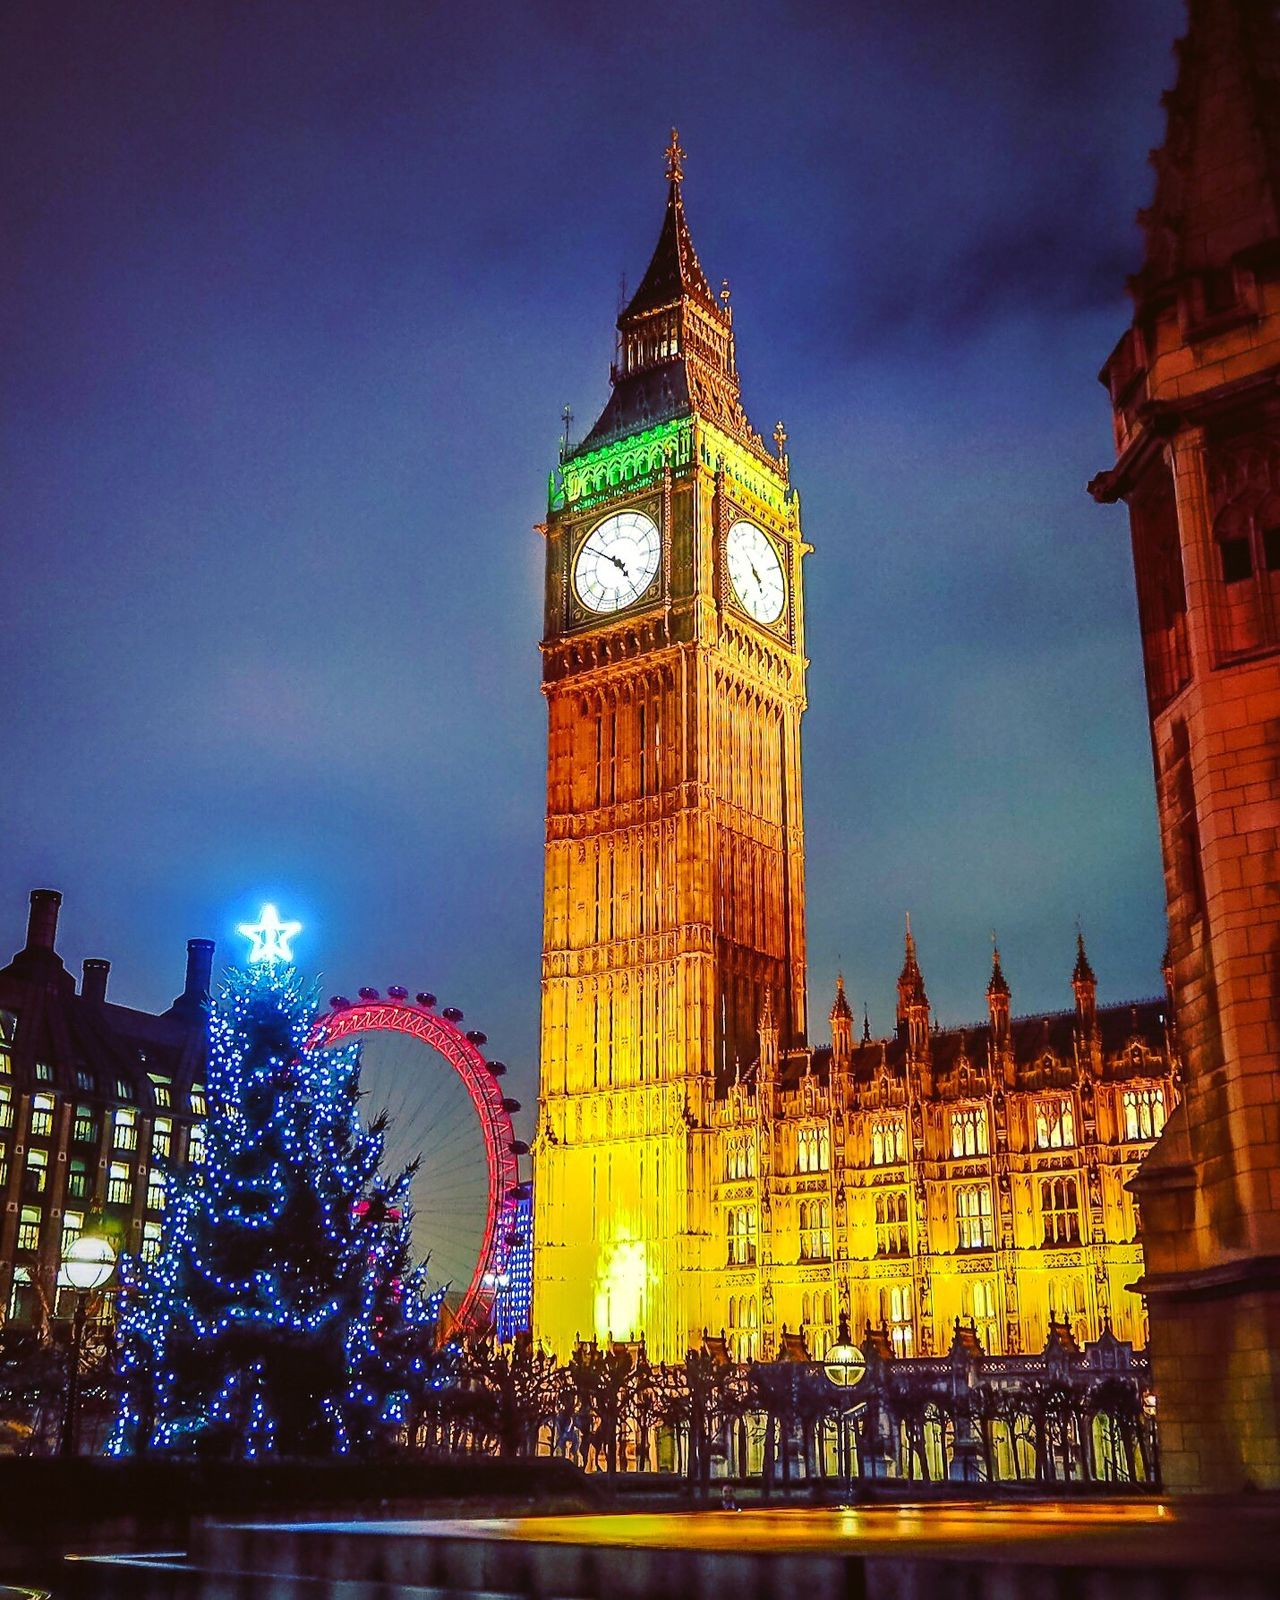 Big Ben at Christmas. Big Ben London Christmas Christmas Tree Parliament Queen Elizabeth Tower